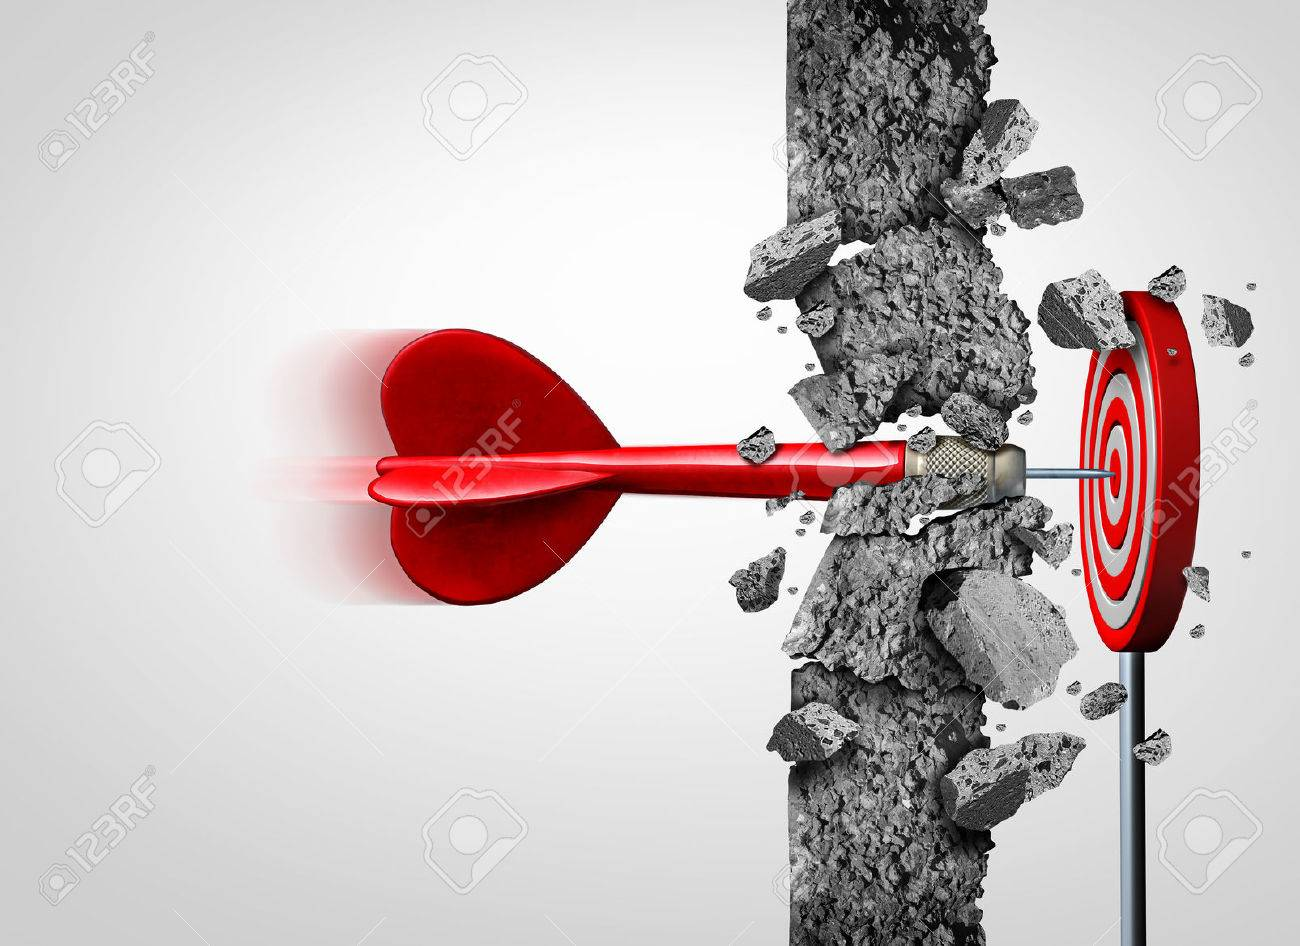 Breaking Through for success without limits and overcoming obstacles as a concrete wall to achieve a goal as a metaphor for a cure or business goals and hitting a financial target with 3D illustration elements. Standard-Bild - 66522893